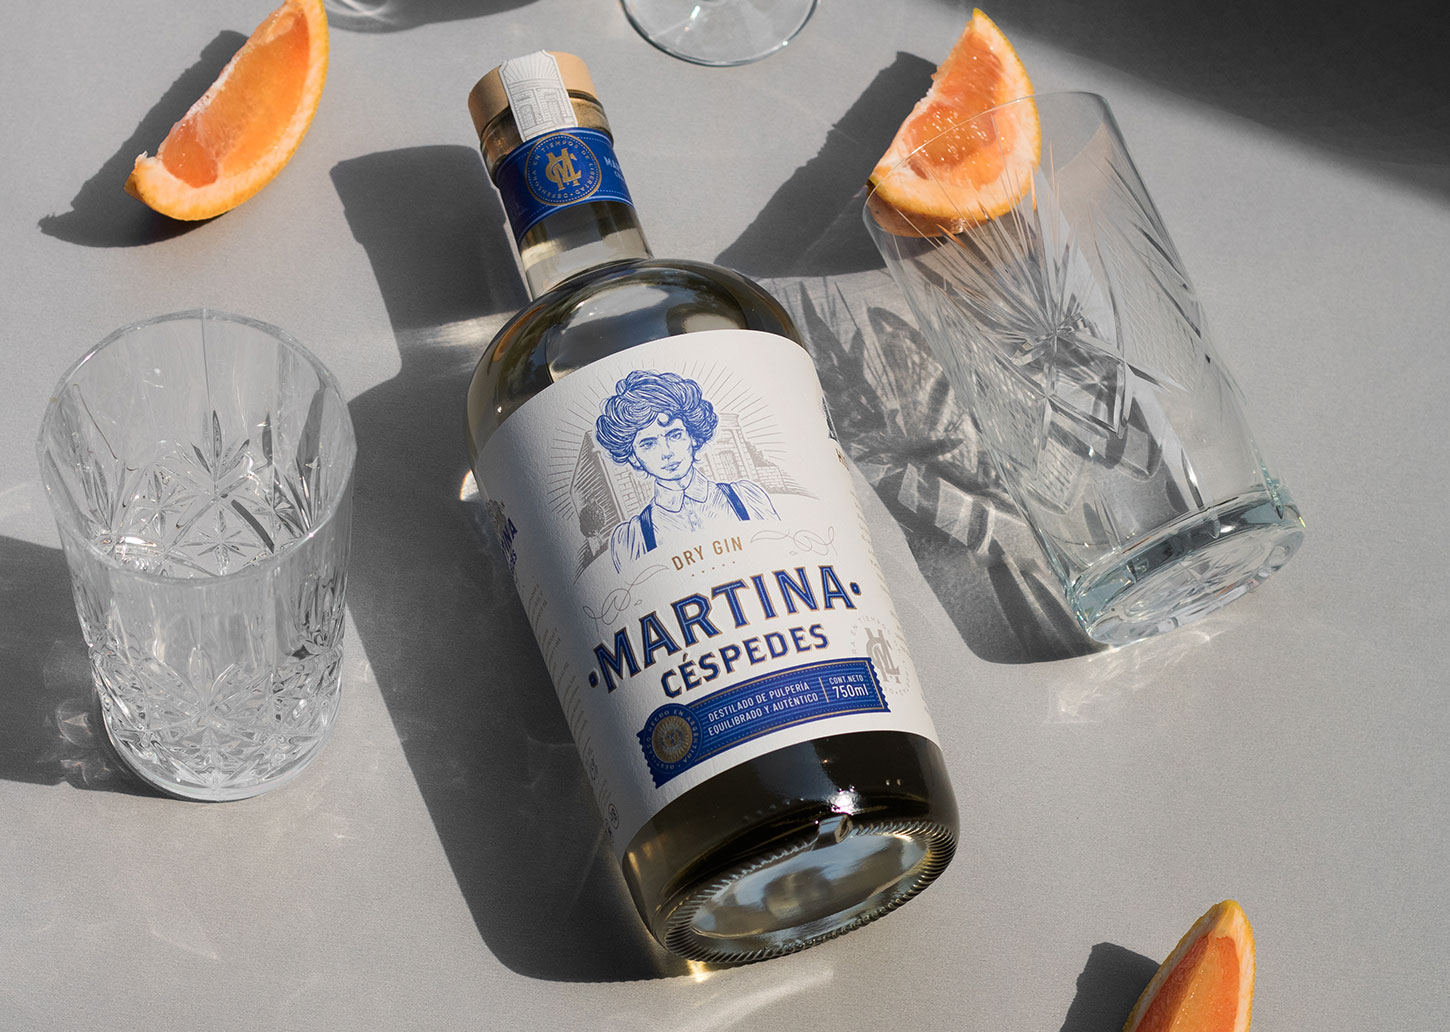 Emi Renzi Create Packaging Design for a Distilled Gin From Argentina